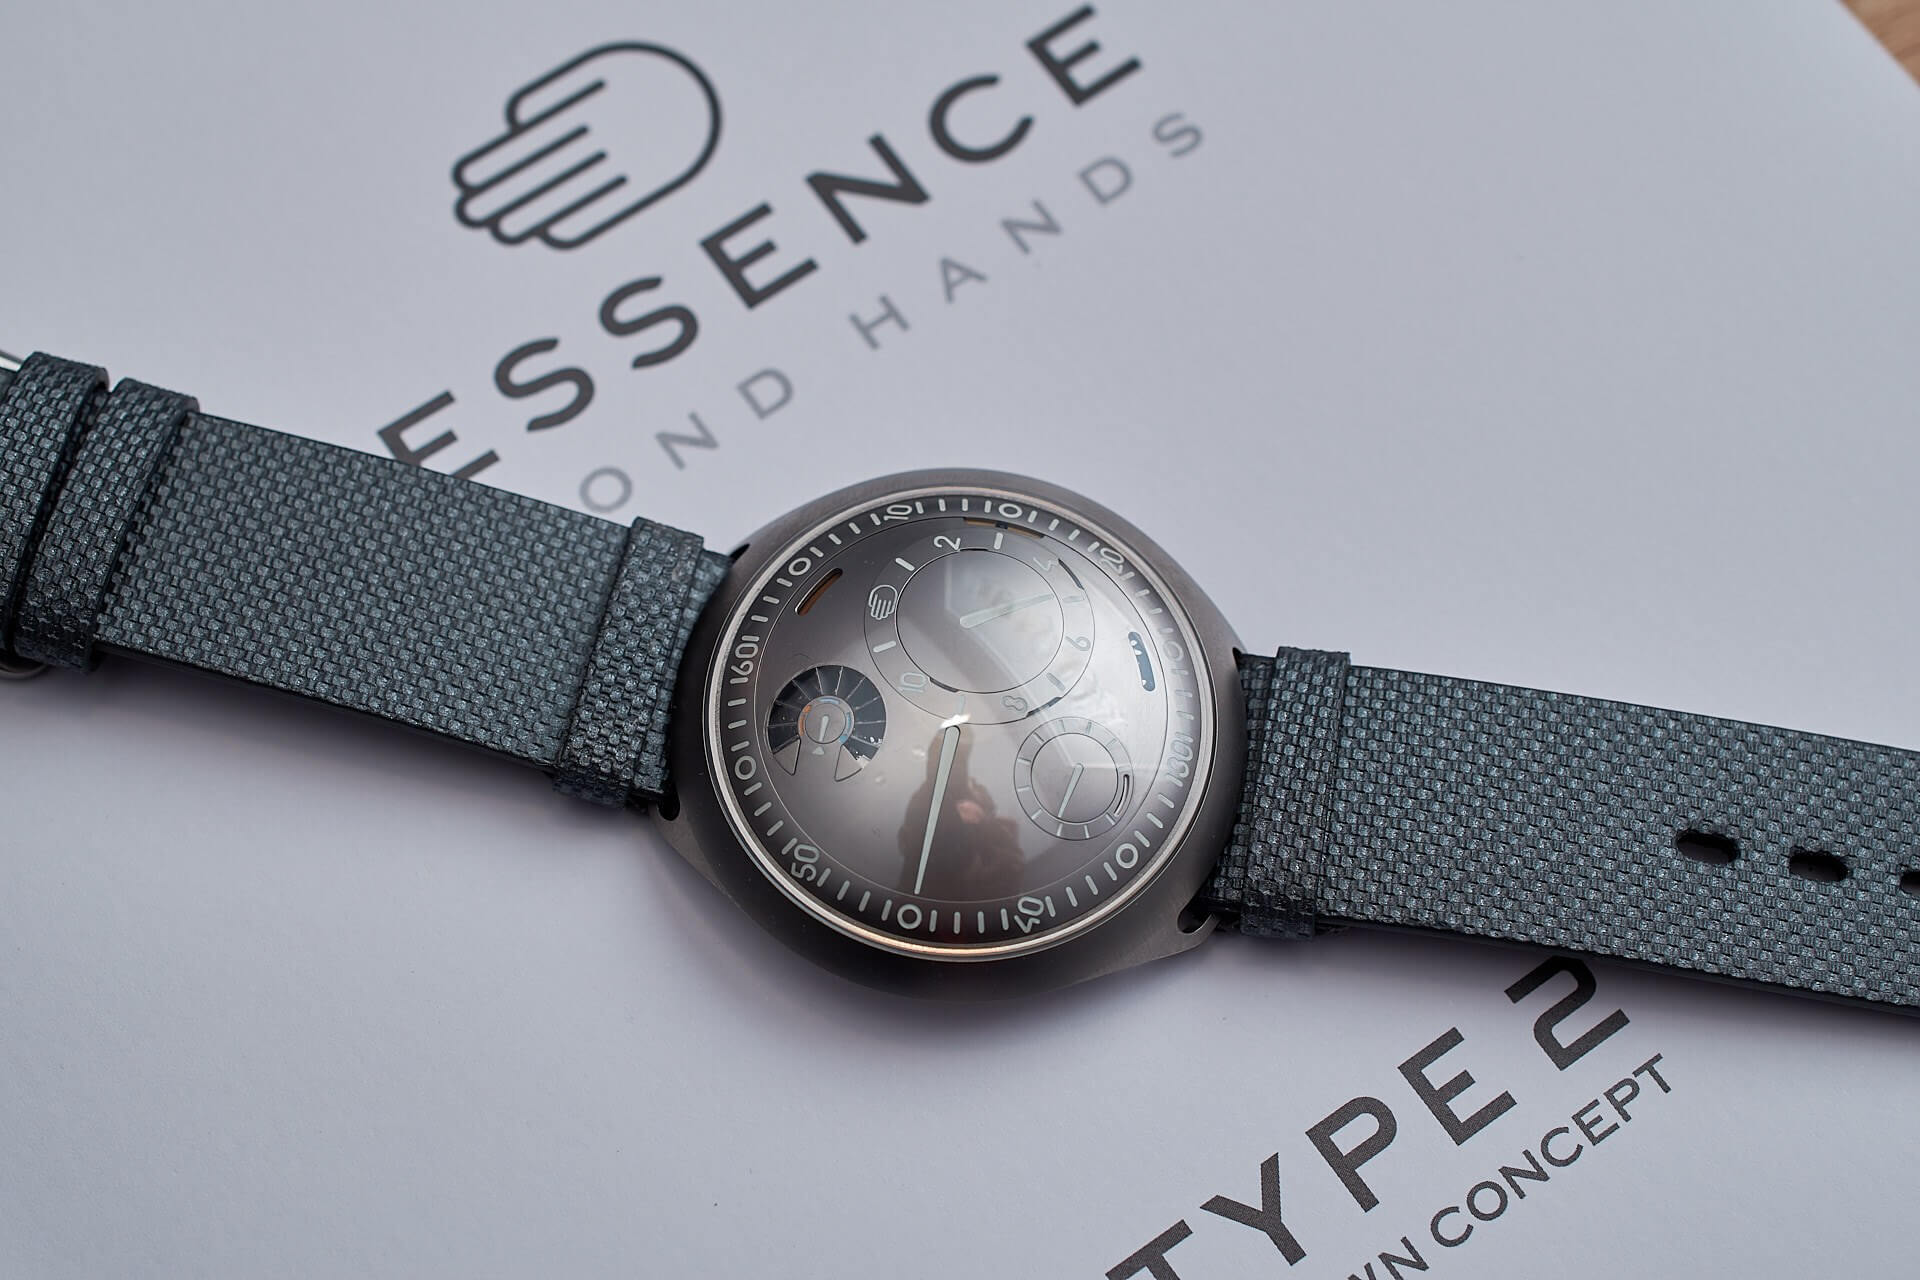 Ressence's high-tech luxury mechanical watch Type 2 launches this April, for $42,500